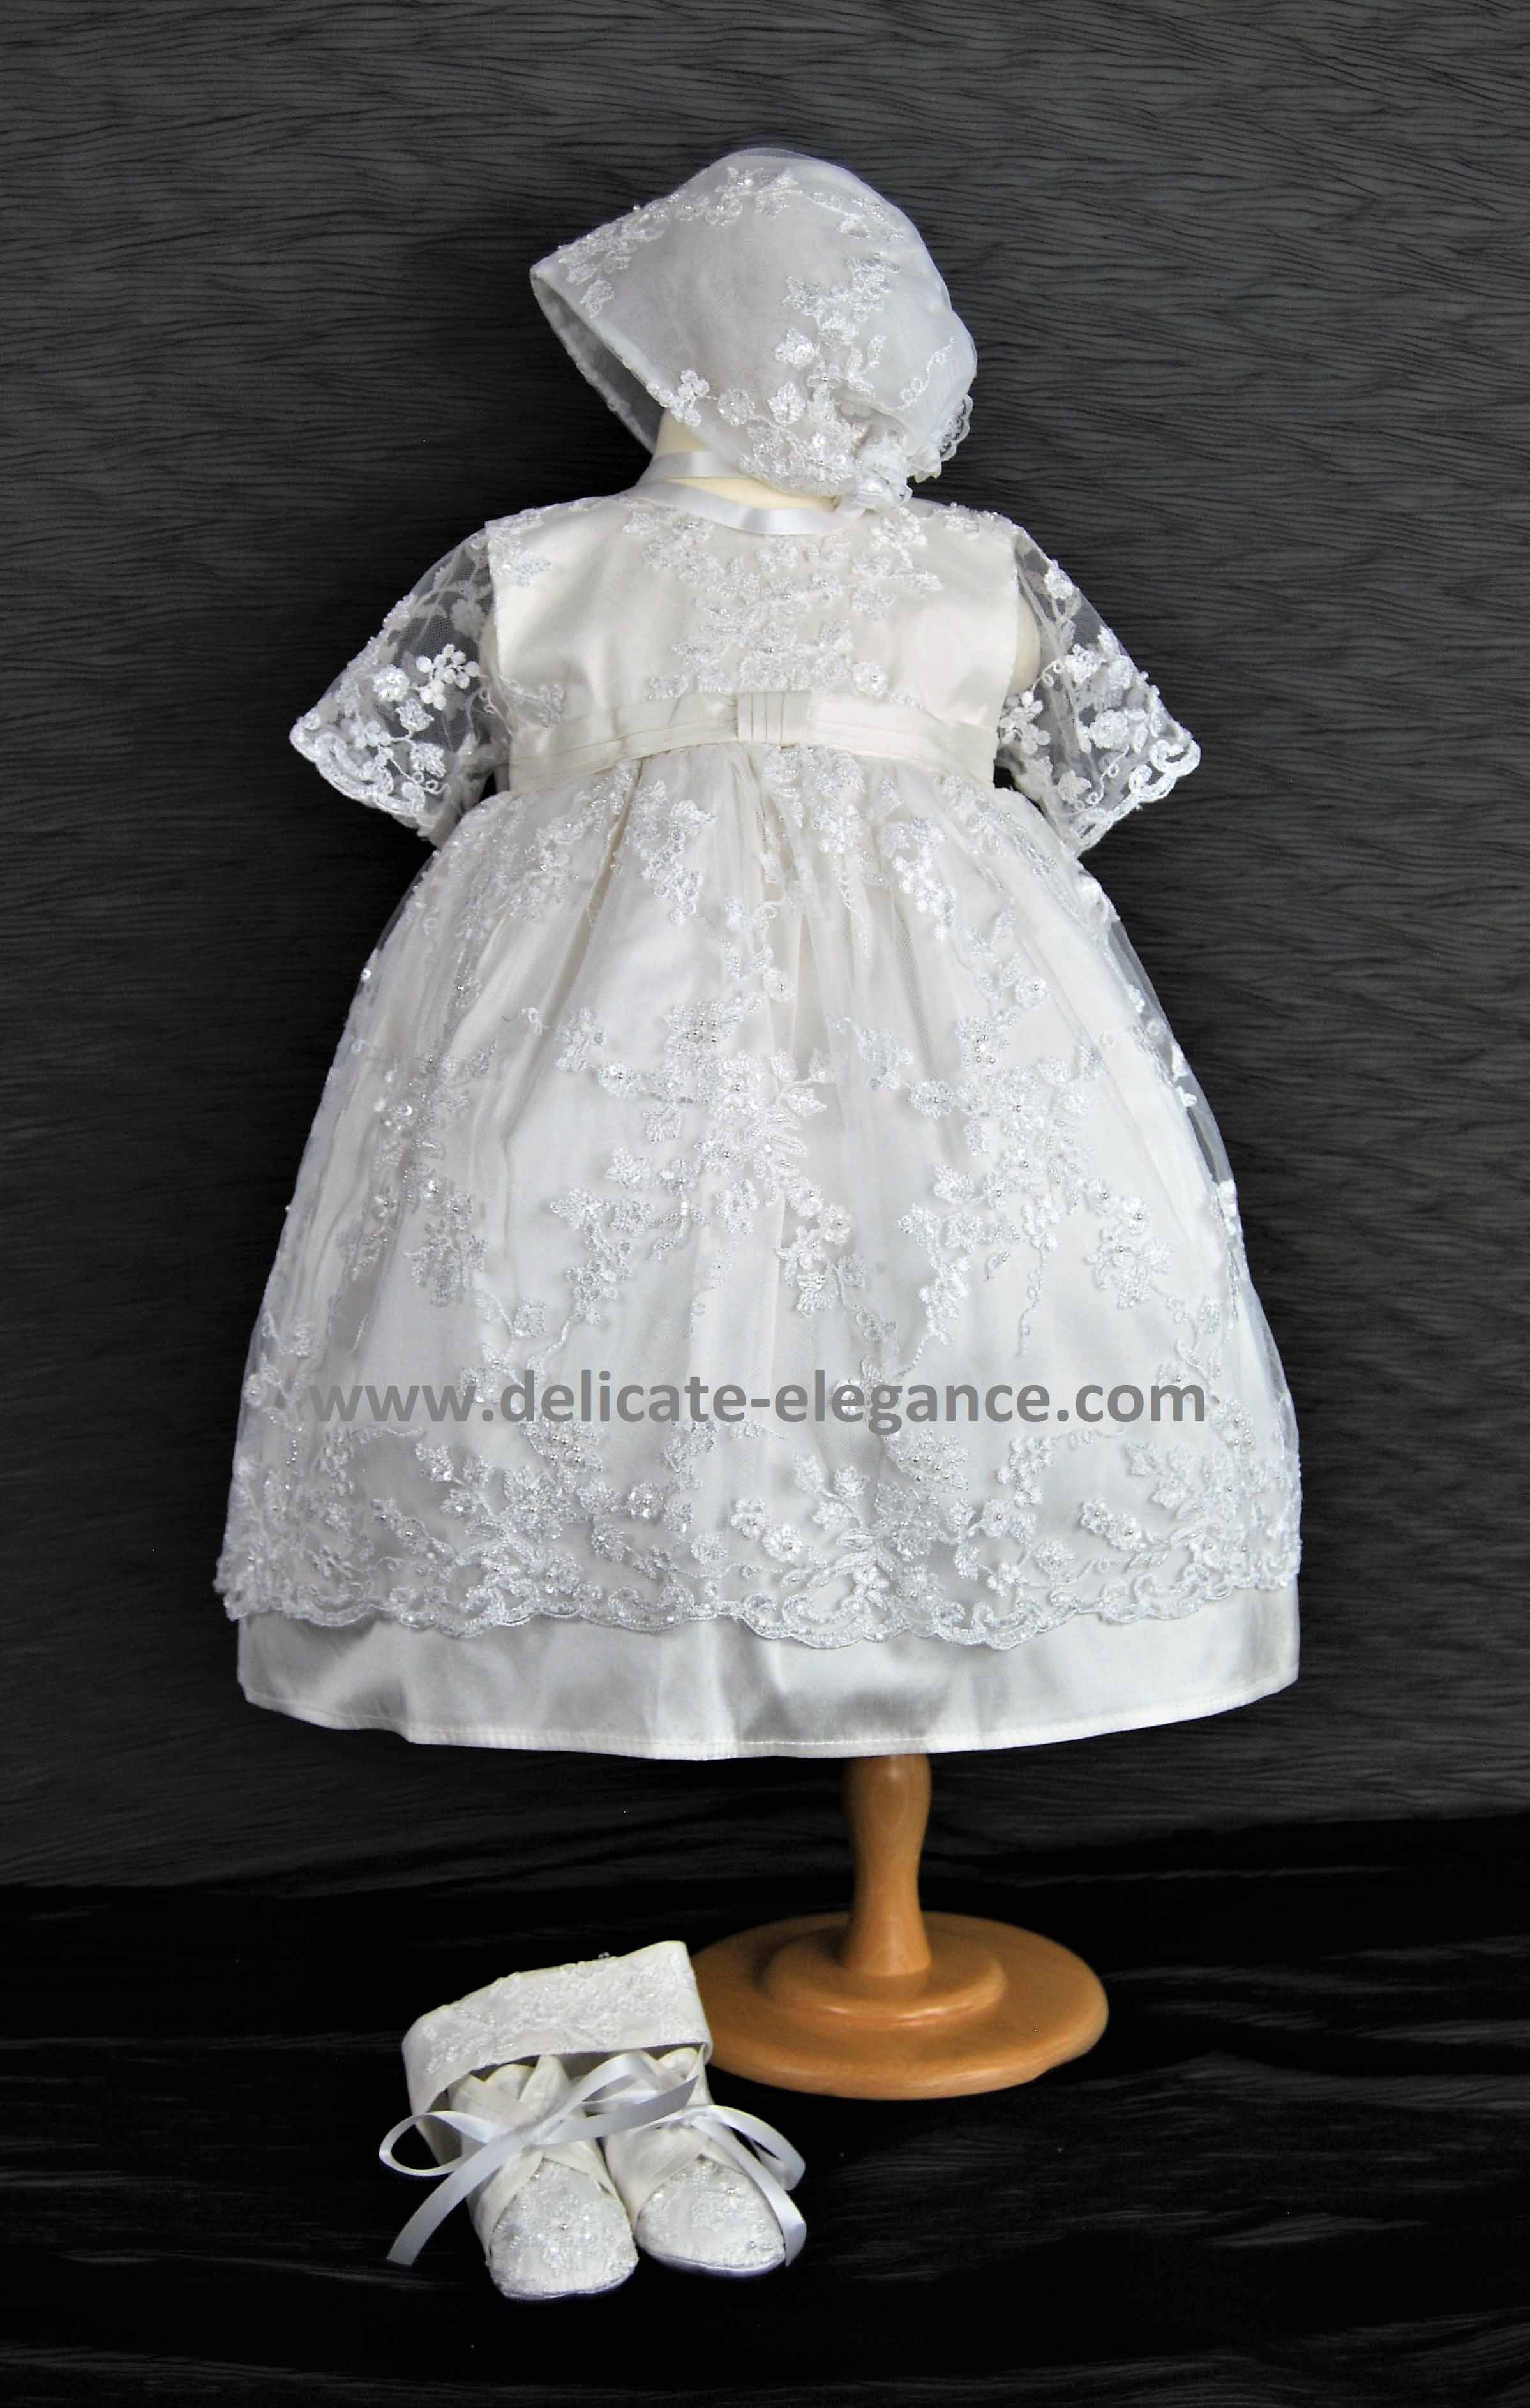 Lace Christening Dress Awesome 4241 01 White Lace Girls Silk Christening Dress Of Innovative 42 Images Lace Christening Dress